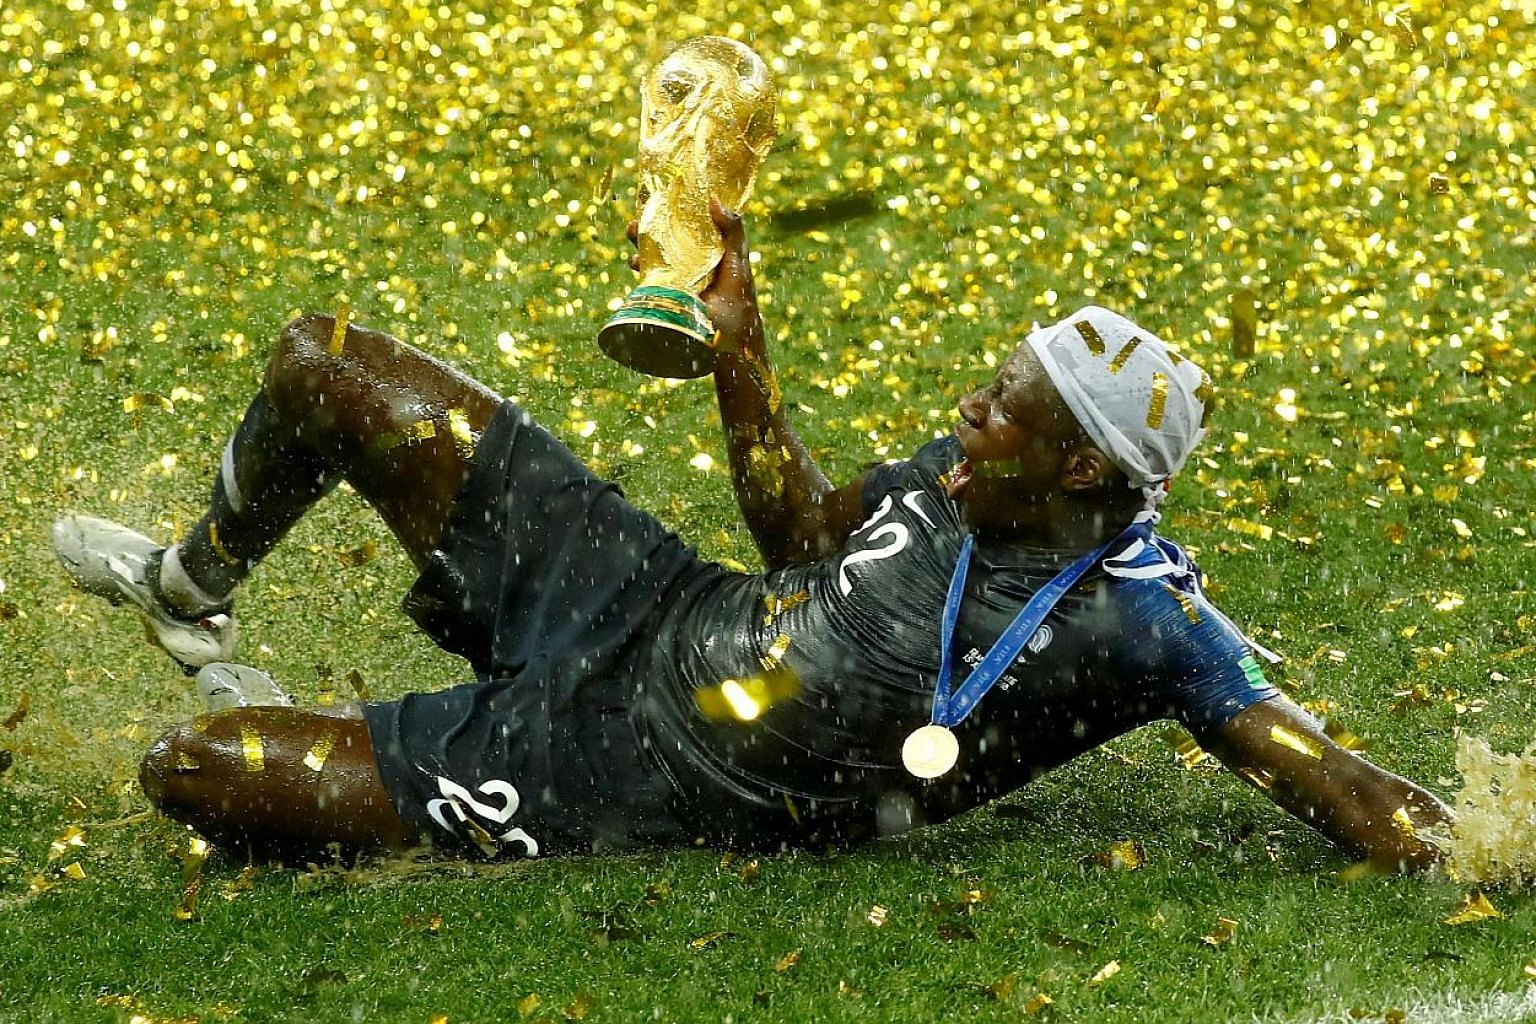 France defender Benjamin Mendy could not contain his joy in the rain as he lifts the World Cup trophy after Les Bleus beat Croatia 4-2 in the final on July 15.